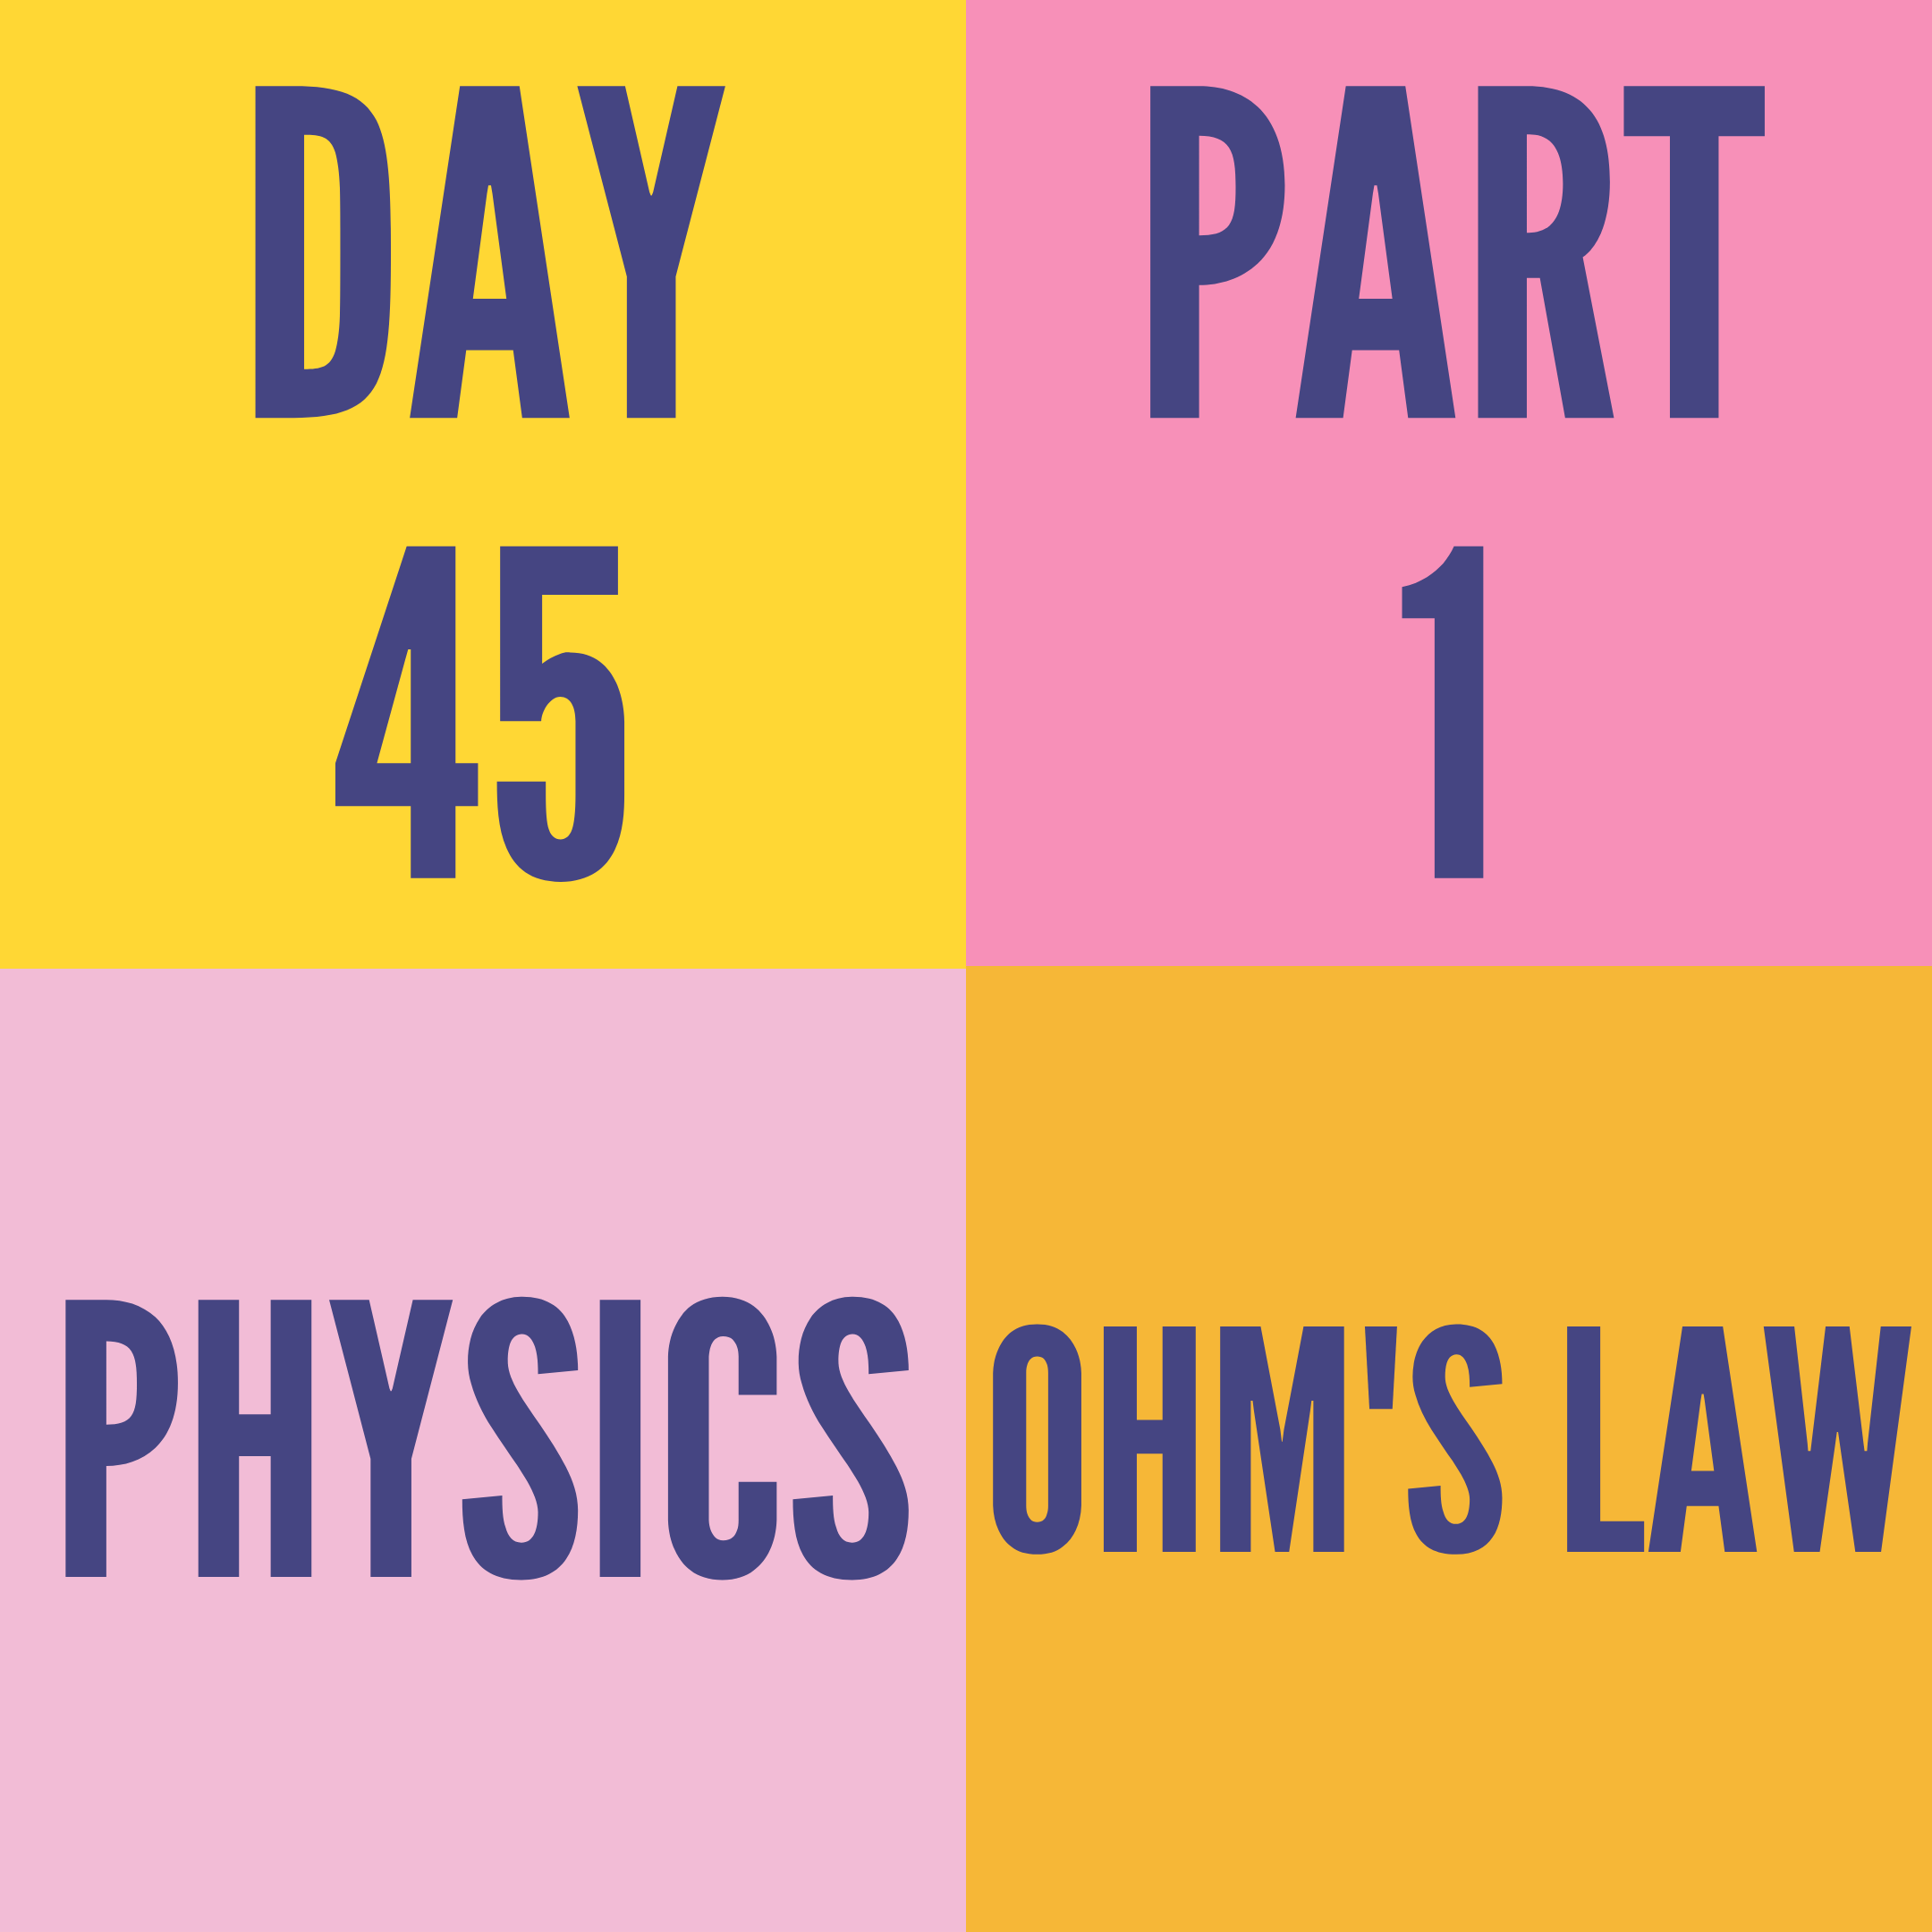 DAY-45 PART-1 FRICTION